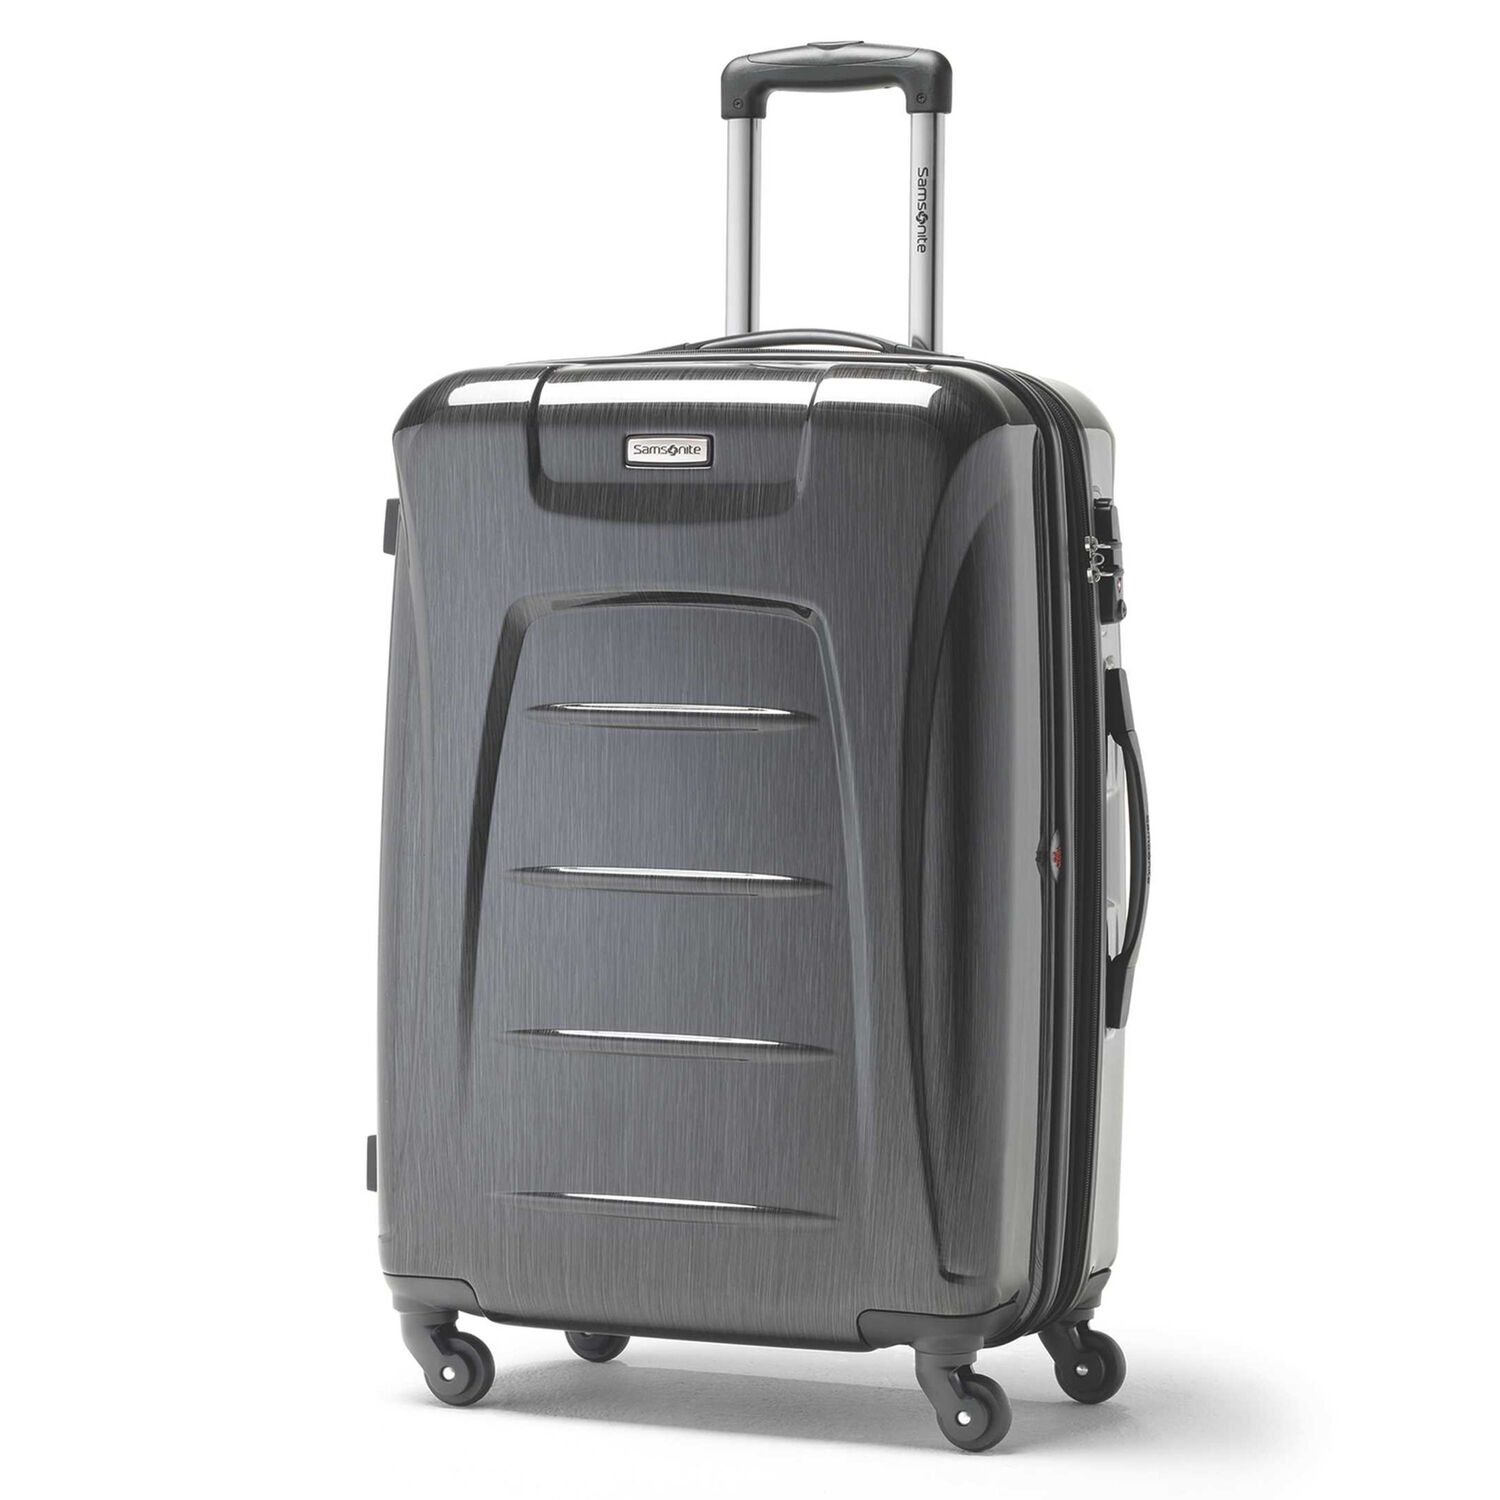 Samsonite Winfield 3 Fashion Spinner Large in the color Charcoal Brushed.